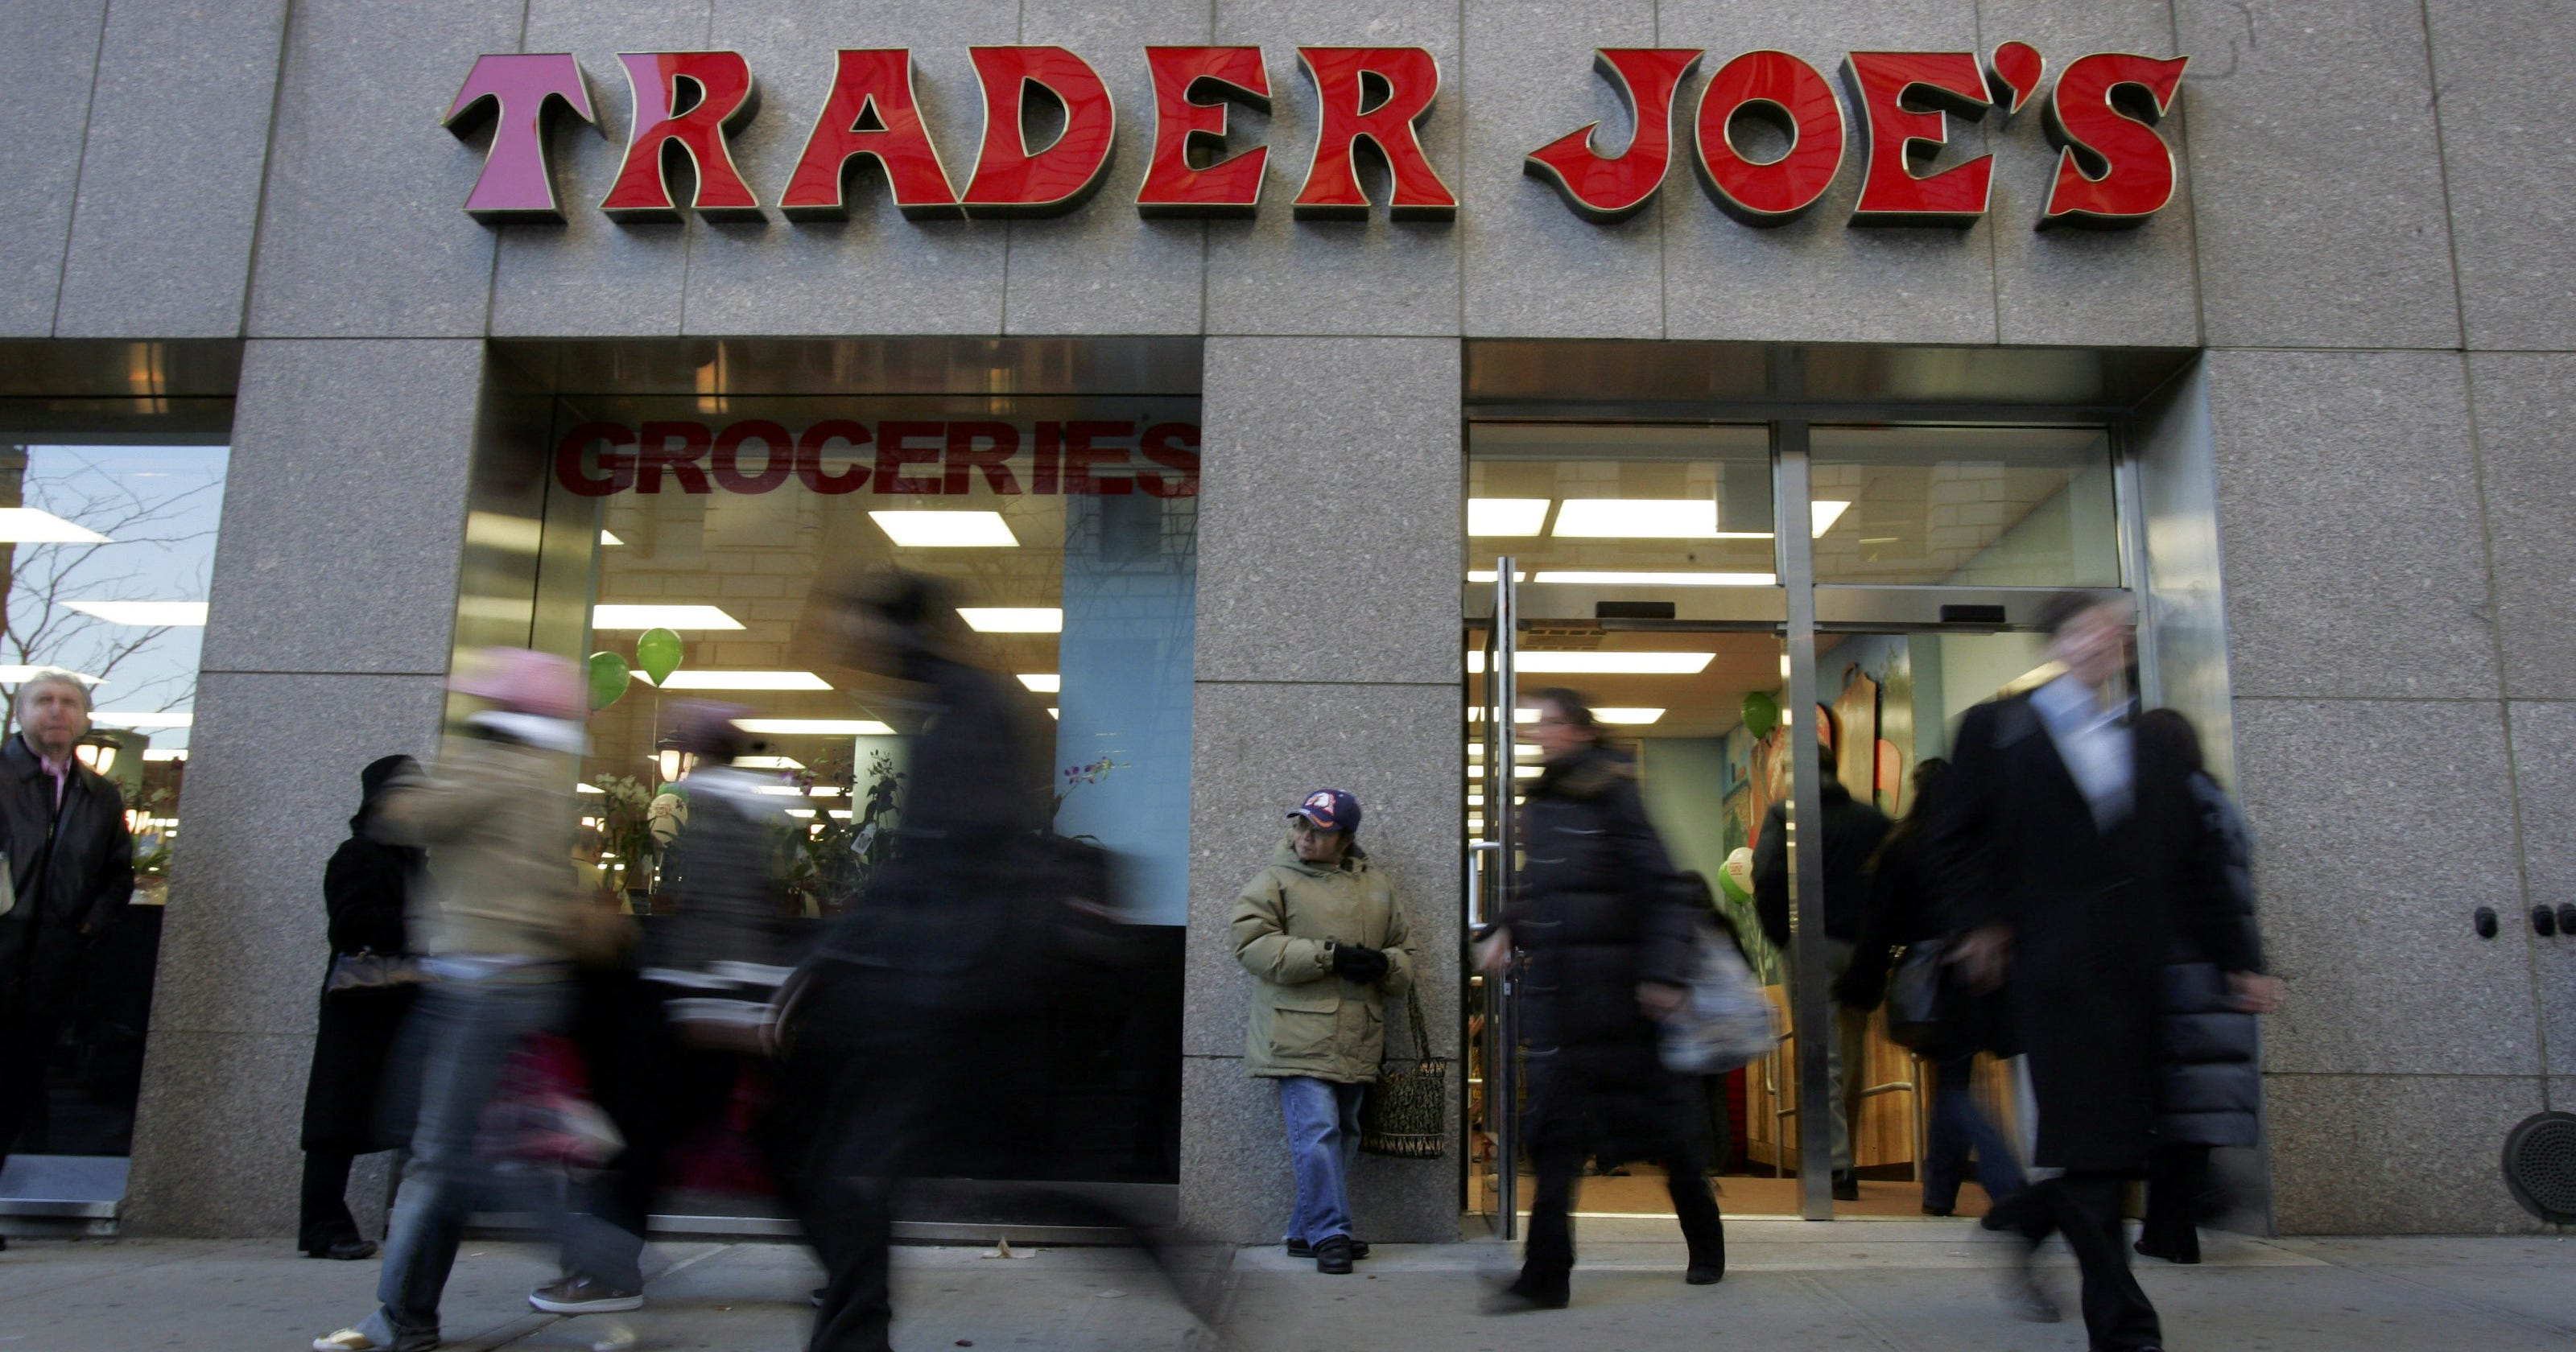 Trader Joe's increases pandemic pay nationwide, while Kroger announces store closings over hazard pay mandates - USA TODAY